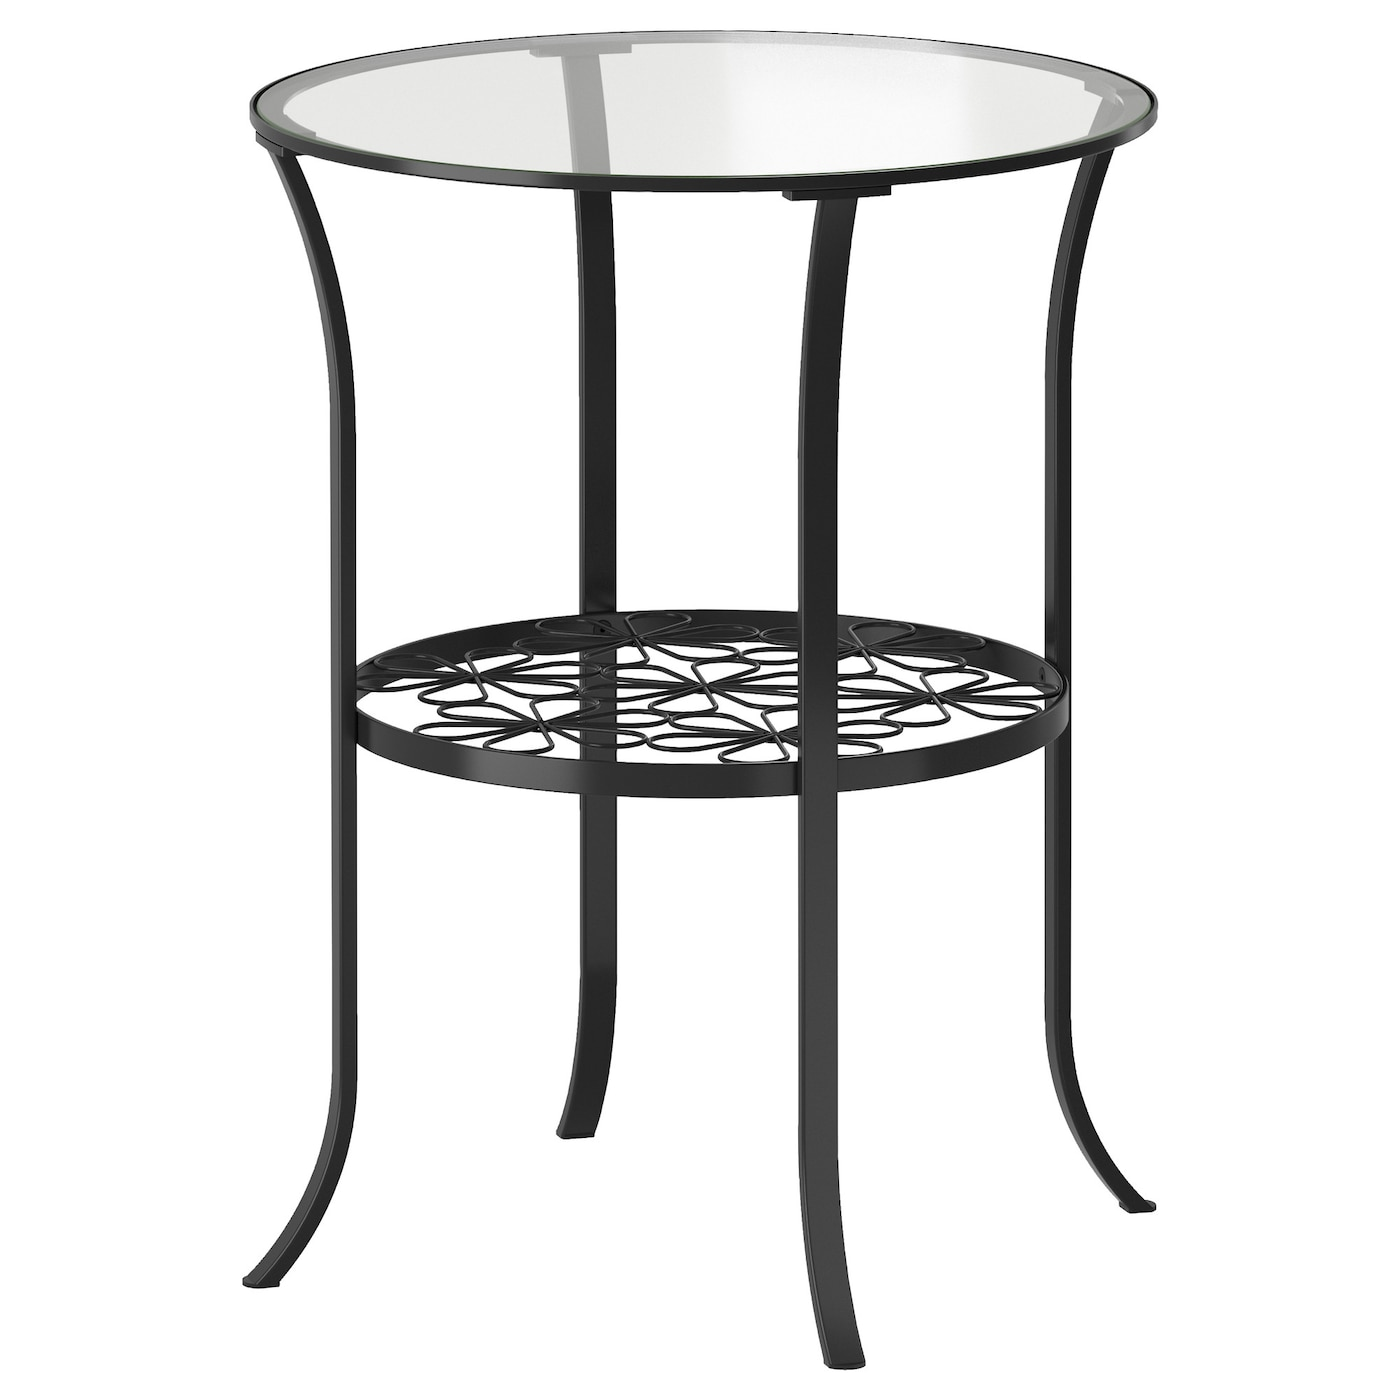 Klingsbo side table black clear glass 49x60 cm ikea for Ikea end tables salon